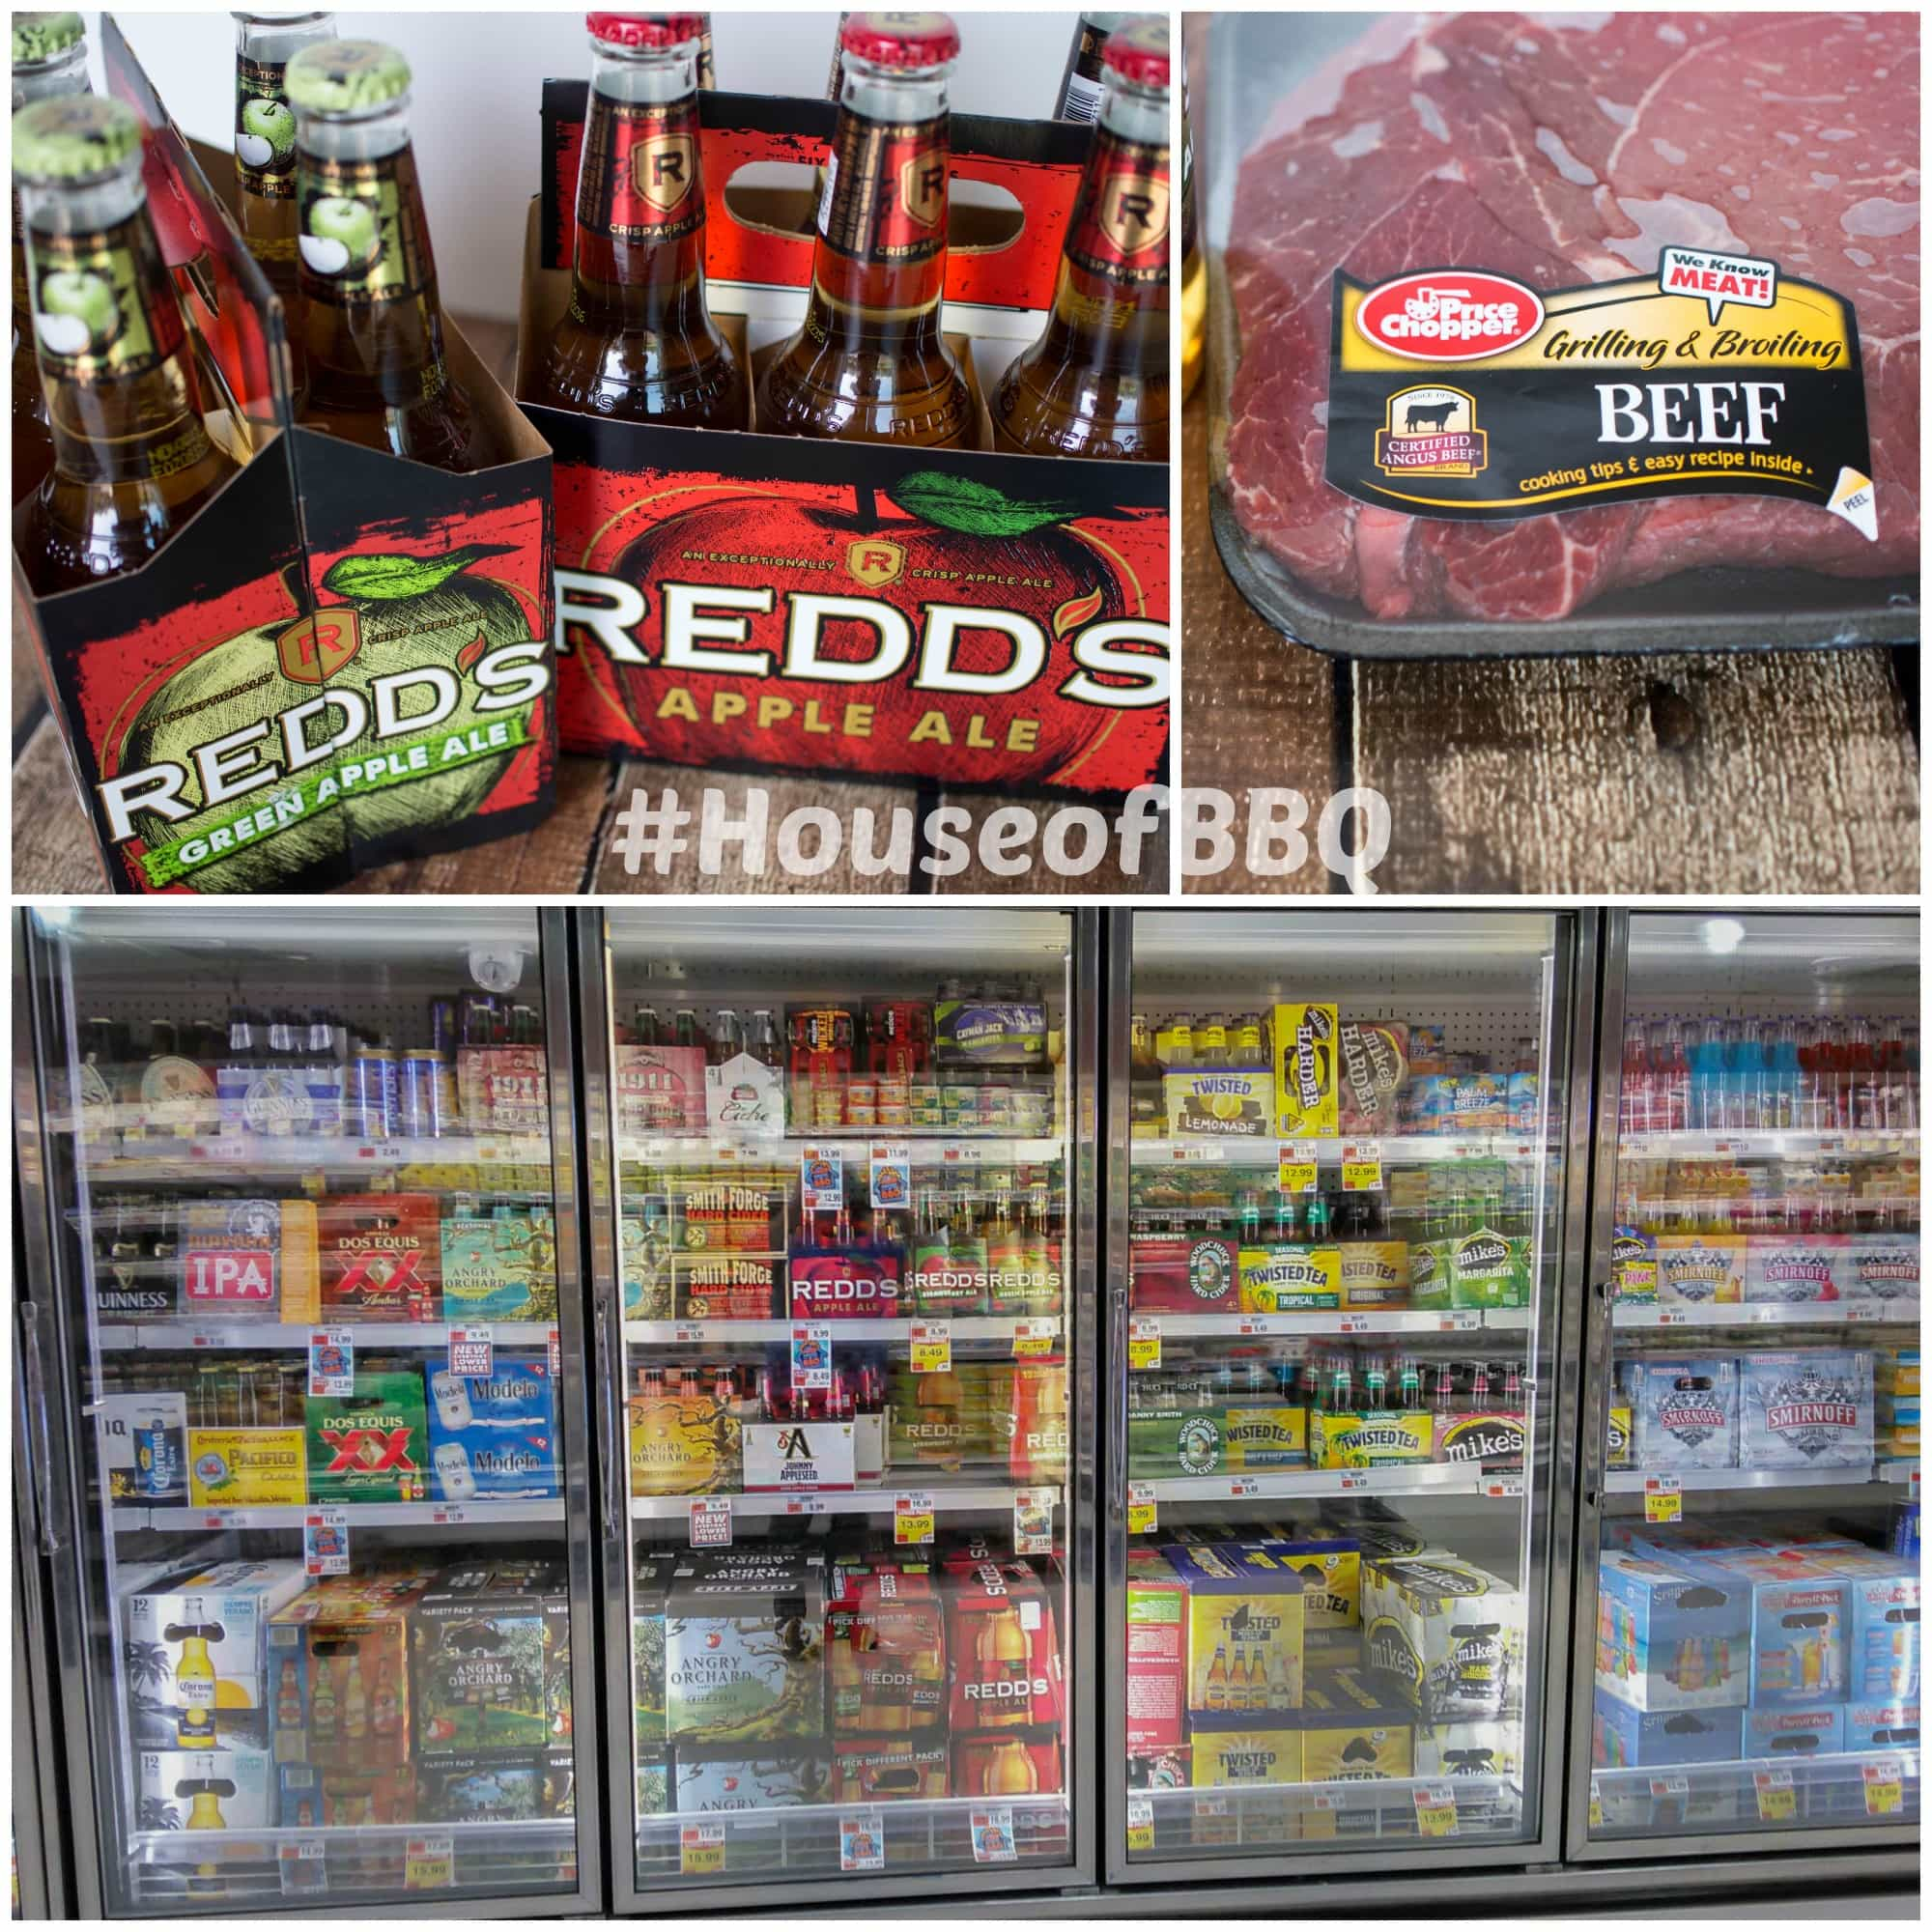 House of BBQ - Redd's Apple Ale and Certified Angus Beef